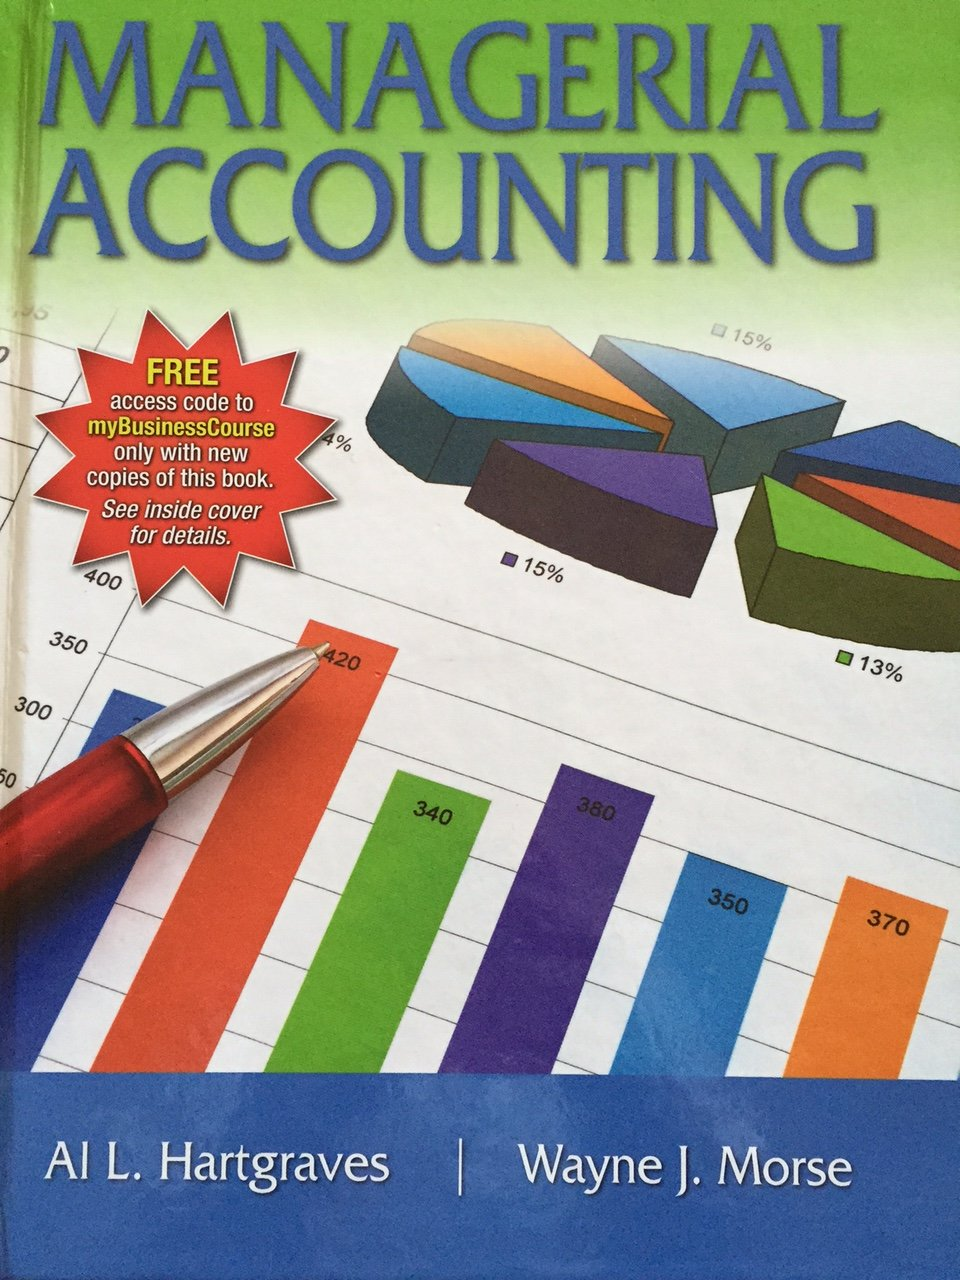 managerial accountinmg In this course, you will find managerial accounting tutorials that will help build and solidify your knowledge of various managerial accounting topics managerial.